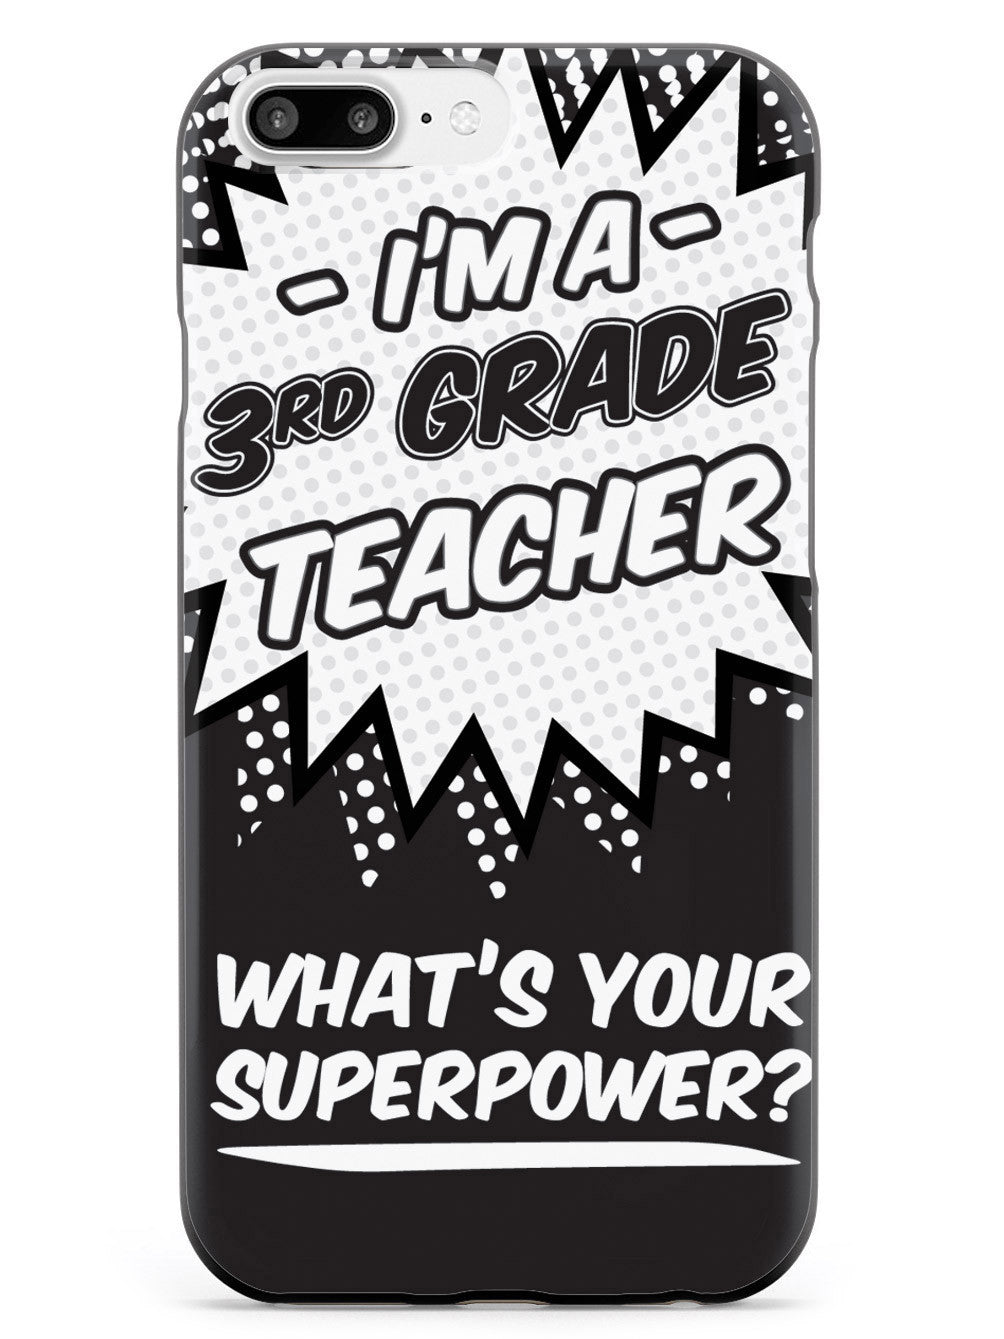 3rd Grade Teacher - What's Your Superpower? Case